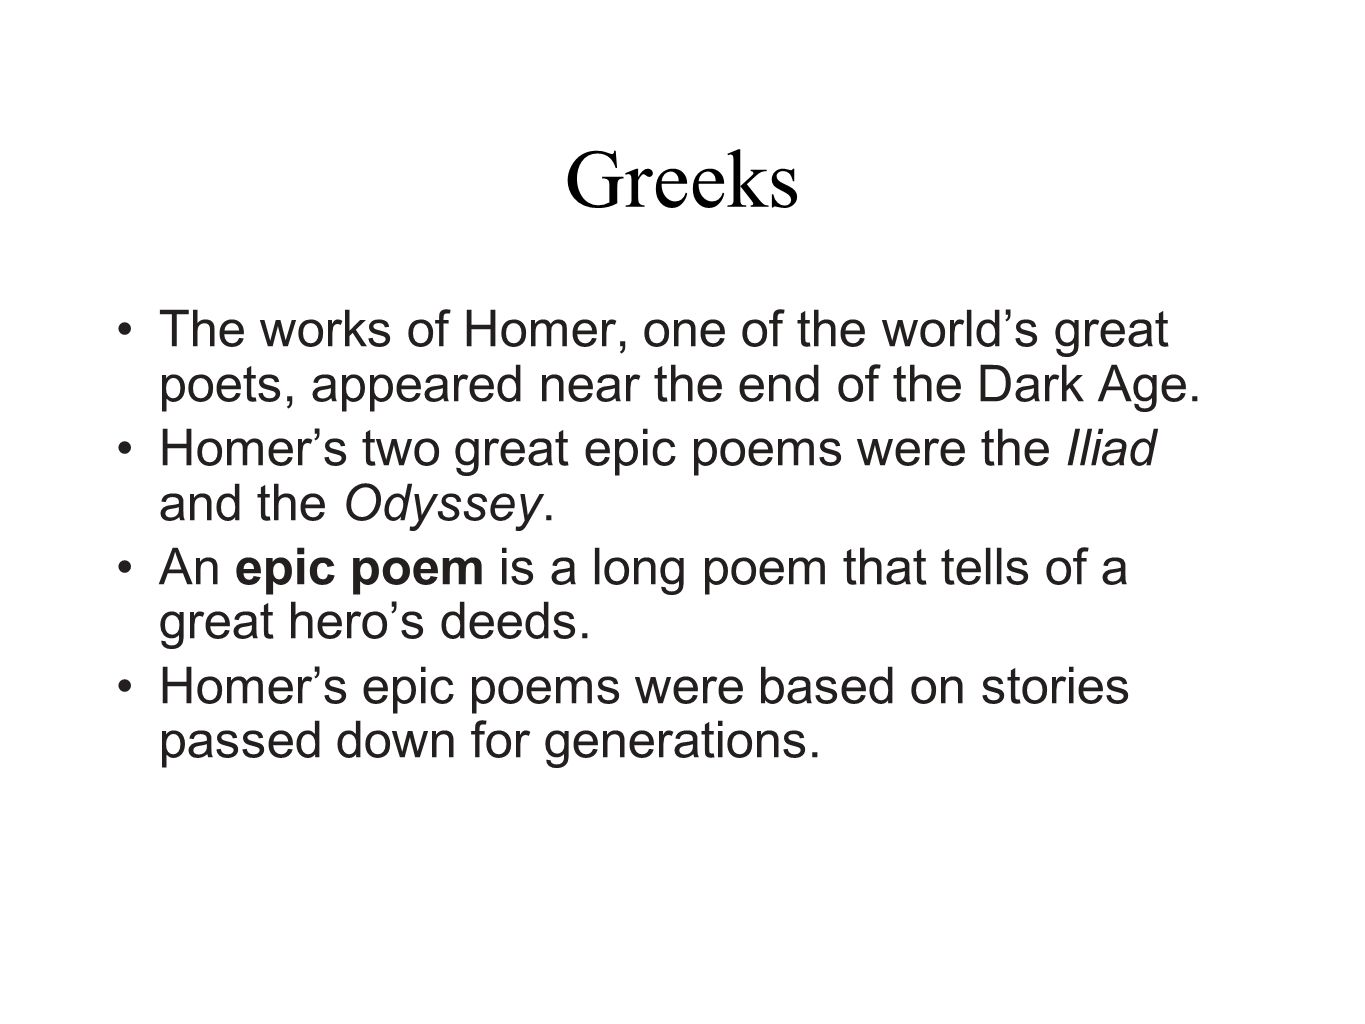 GreeksThe works of Homer, one of the world's great poets, appeared near the end of the Dark Age.